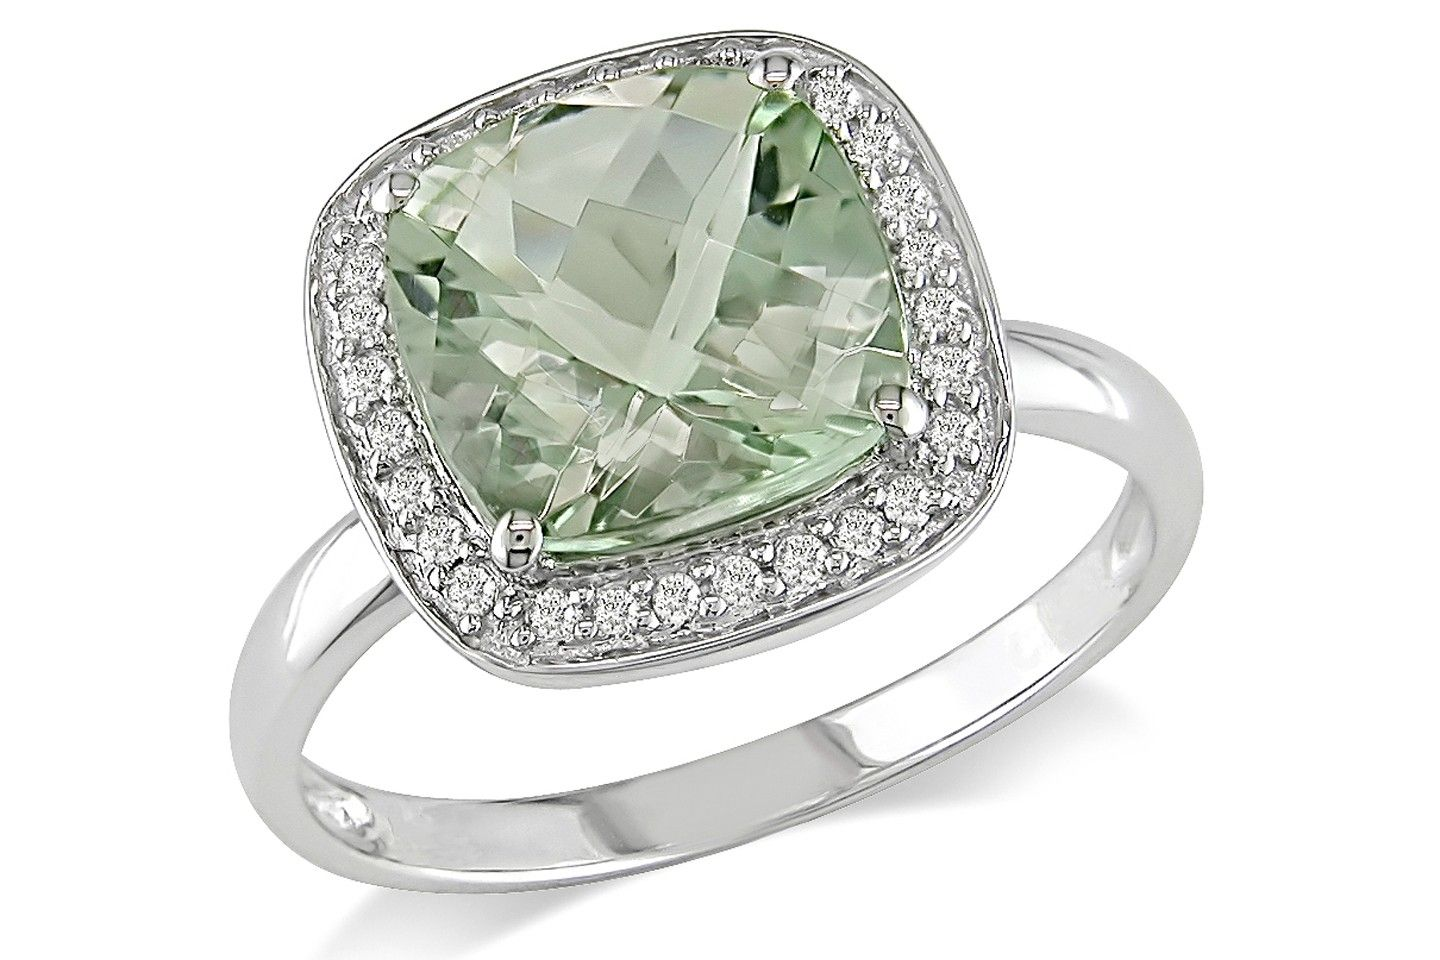 1/10 CT  Diamond TW And 2 5/8 CT TGW Green Amethyst Fashion Ring 10k White Gold GH I1;I2